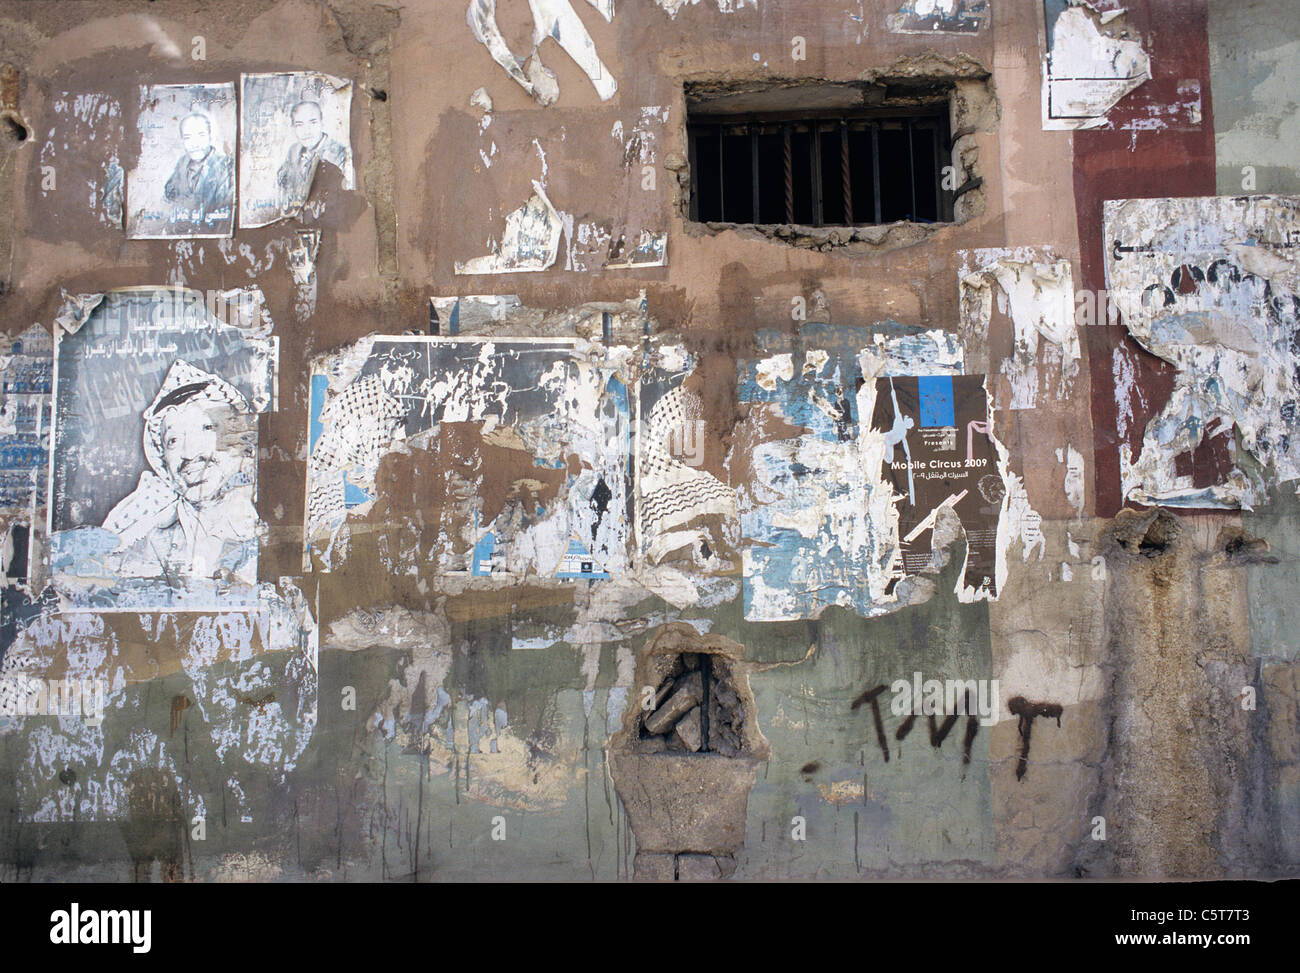 Palestine, View of wall in bad condition - Stock Image